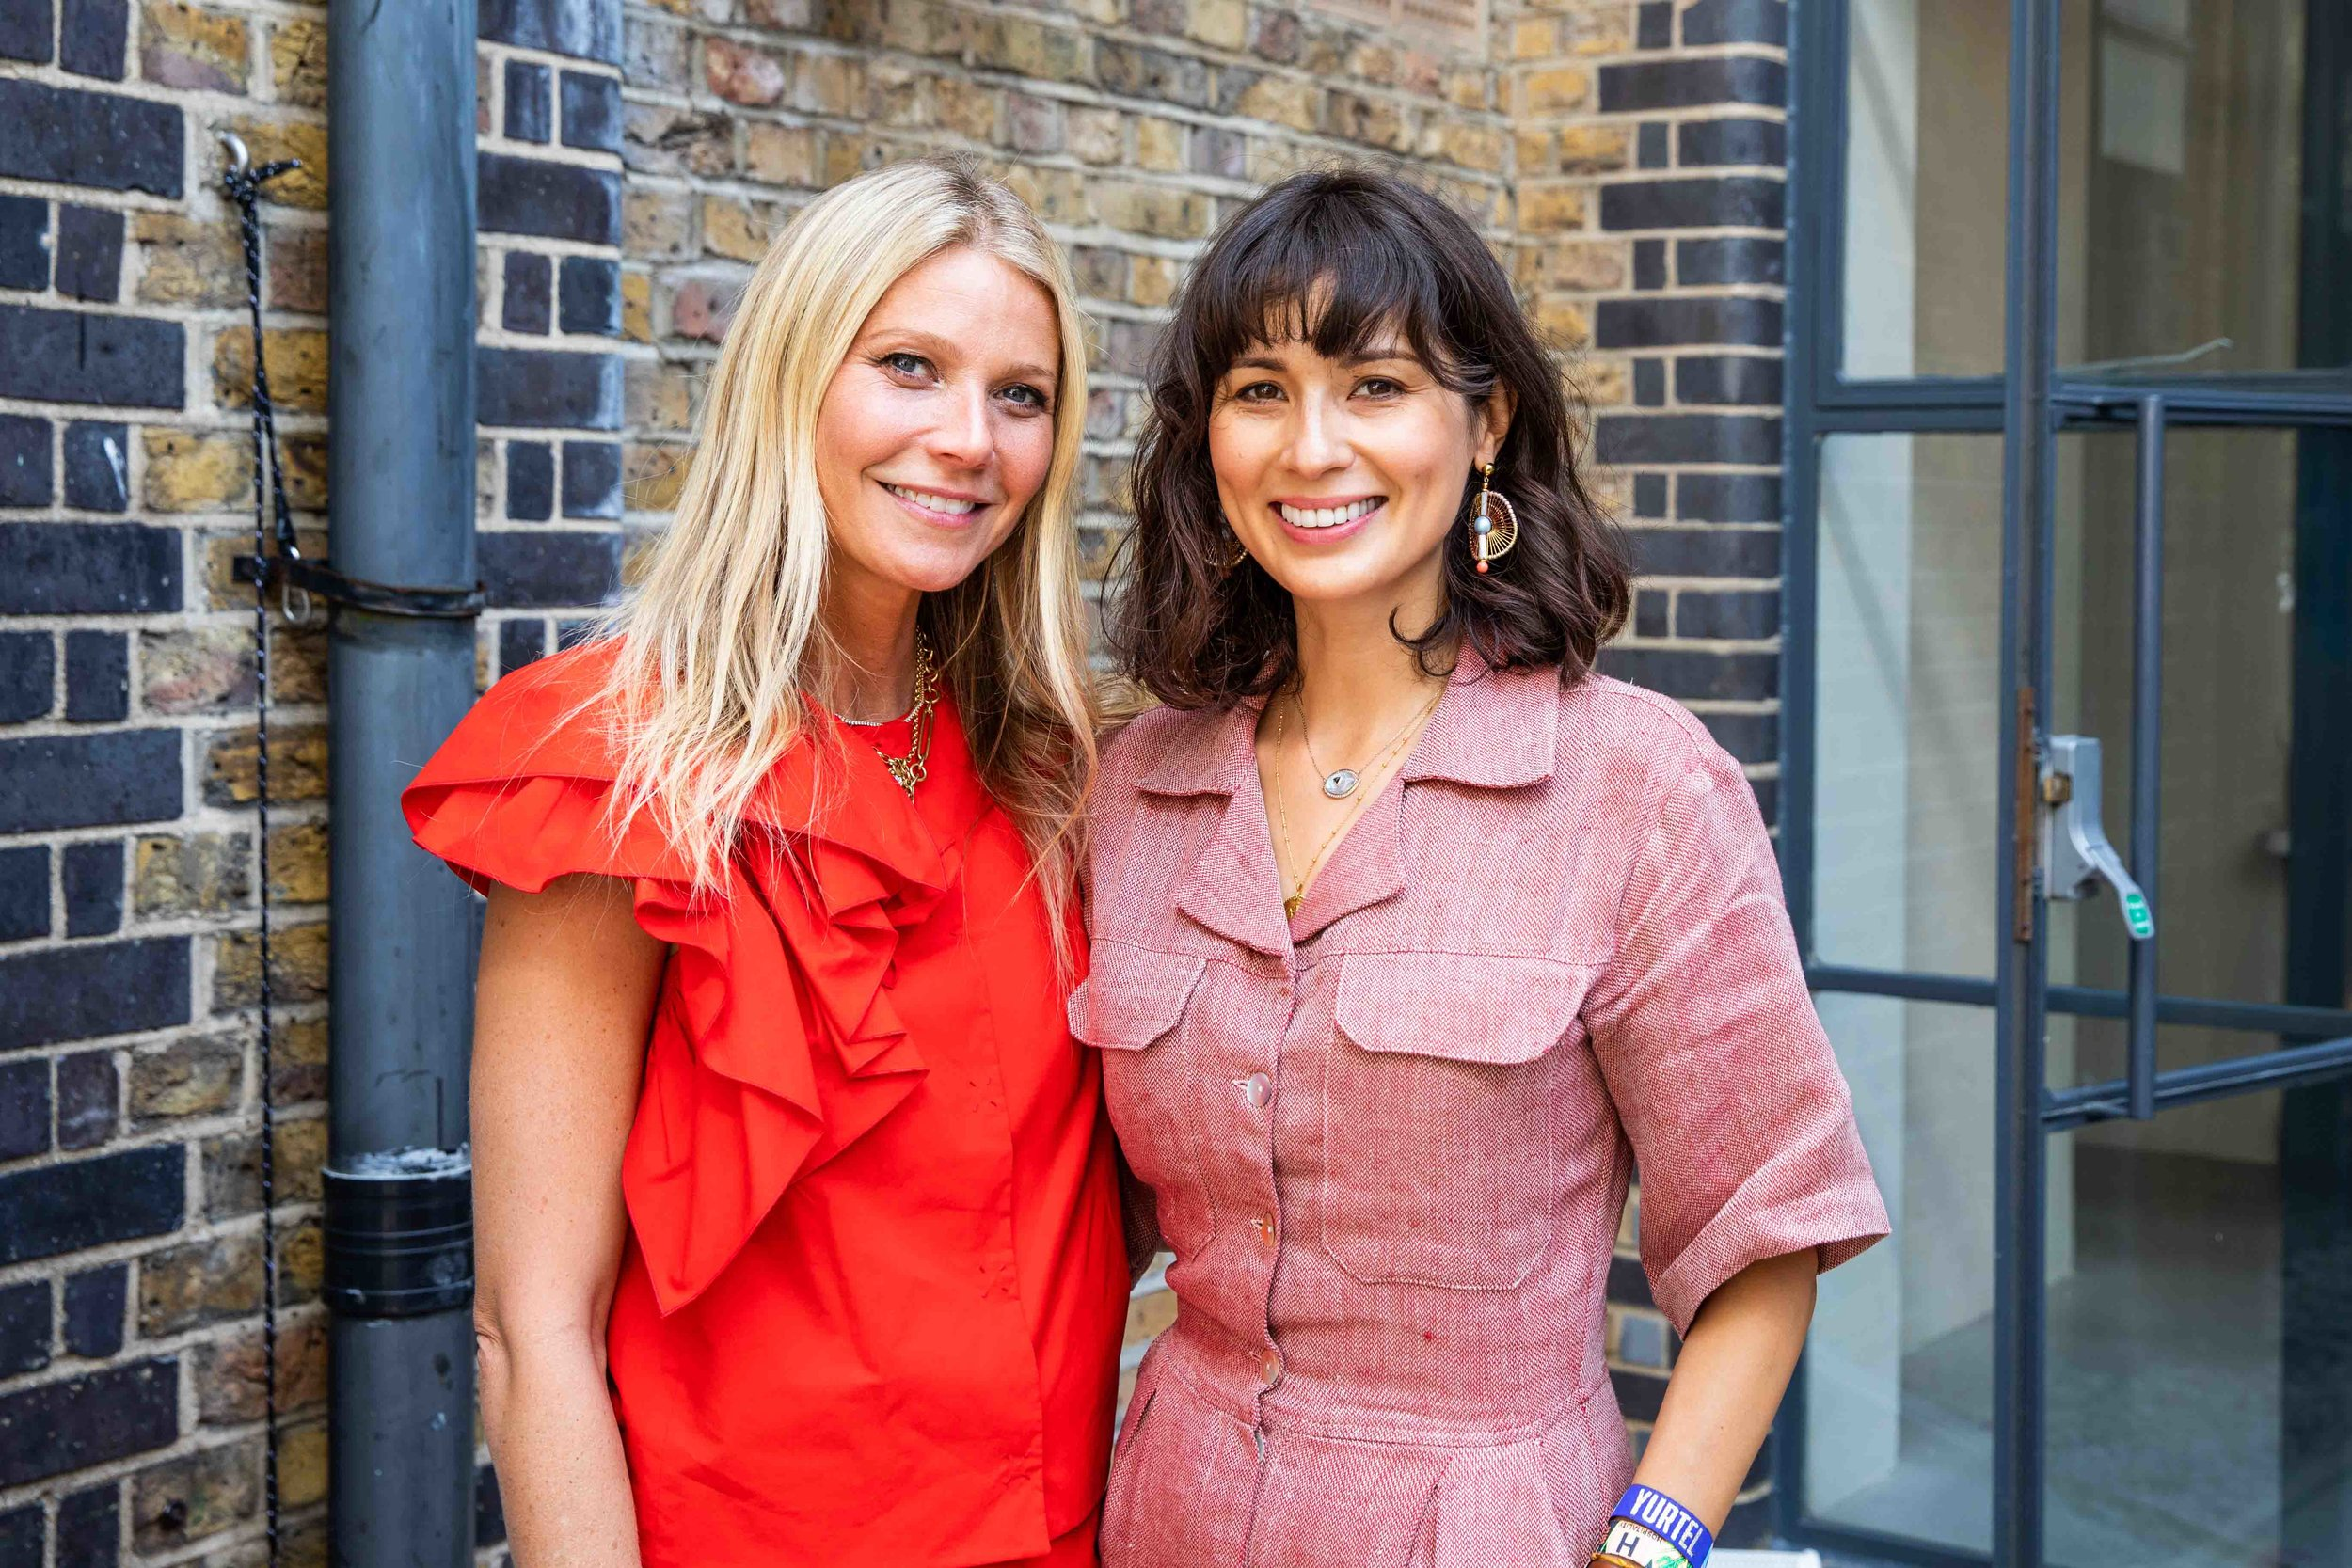 JasmineHemsley_Goop__NickHopperPhotography-1587.jpg